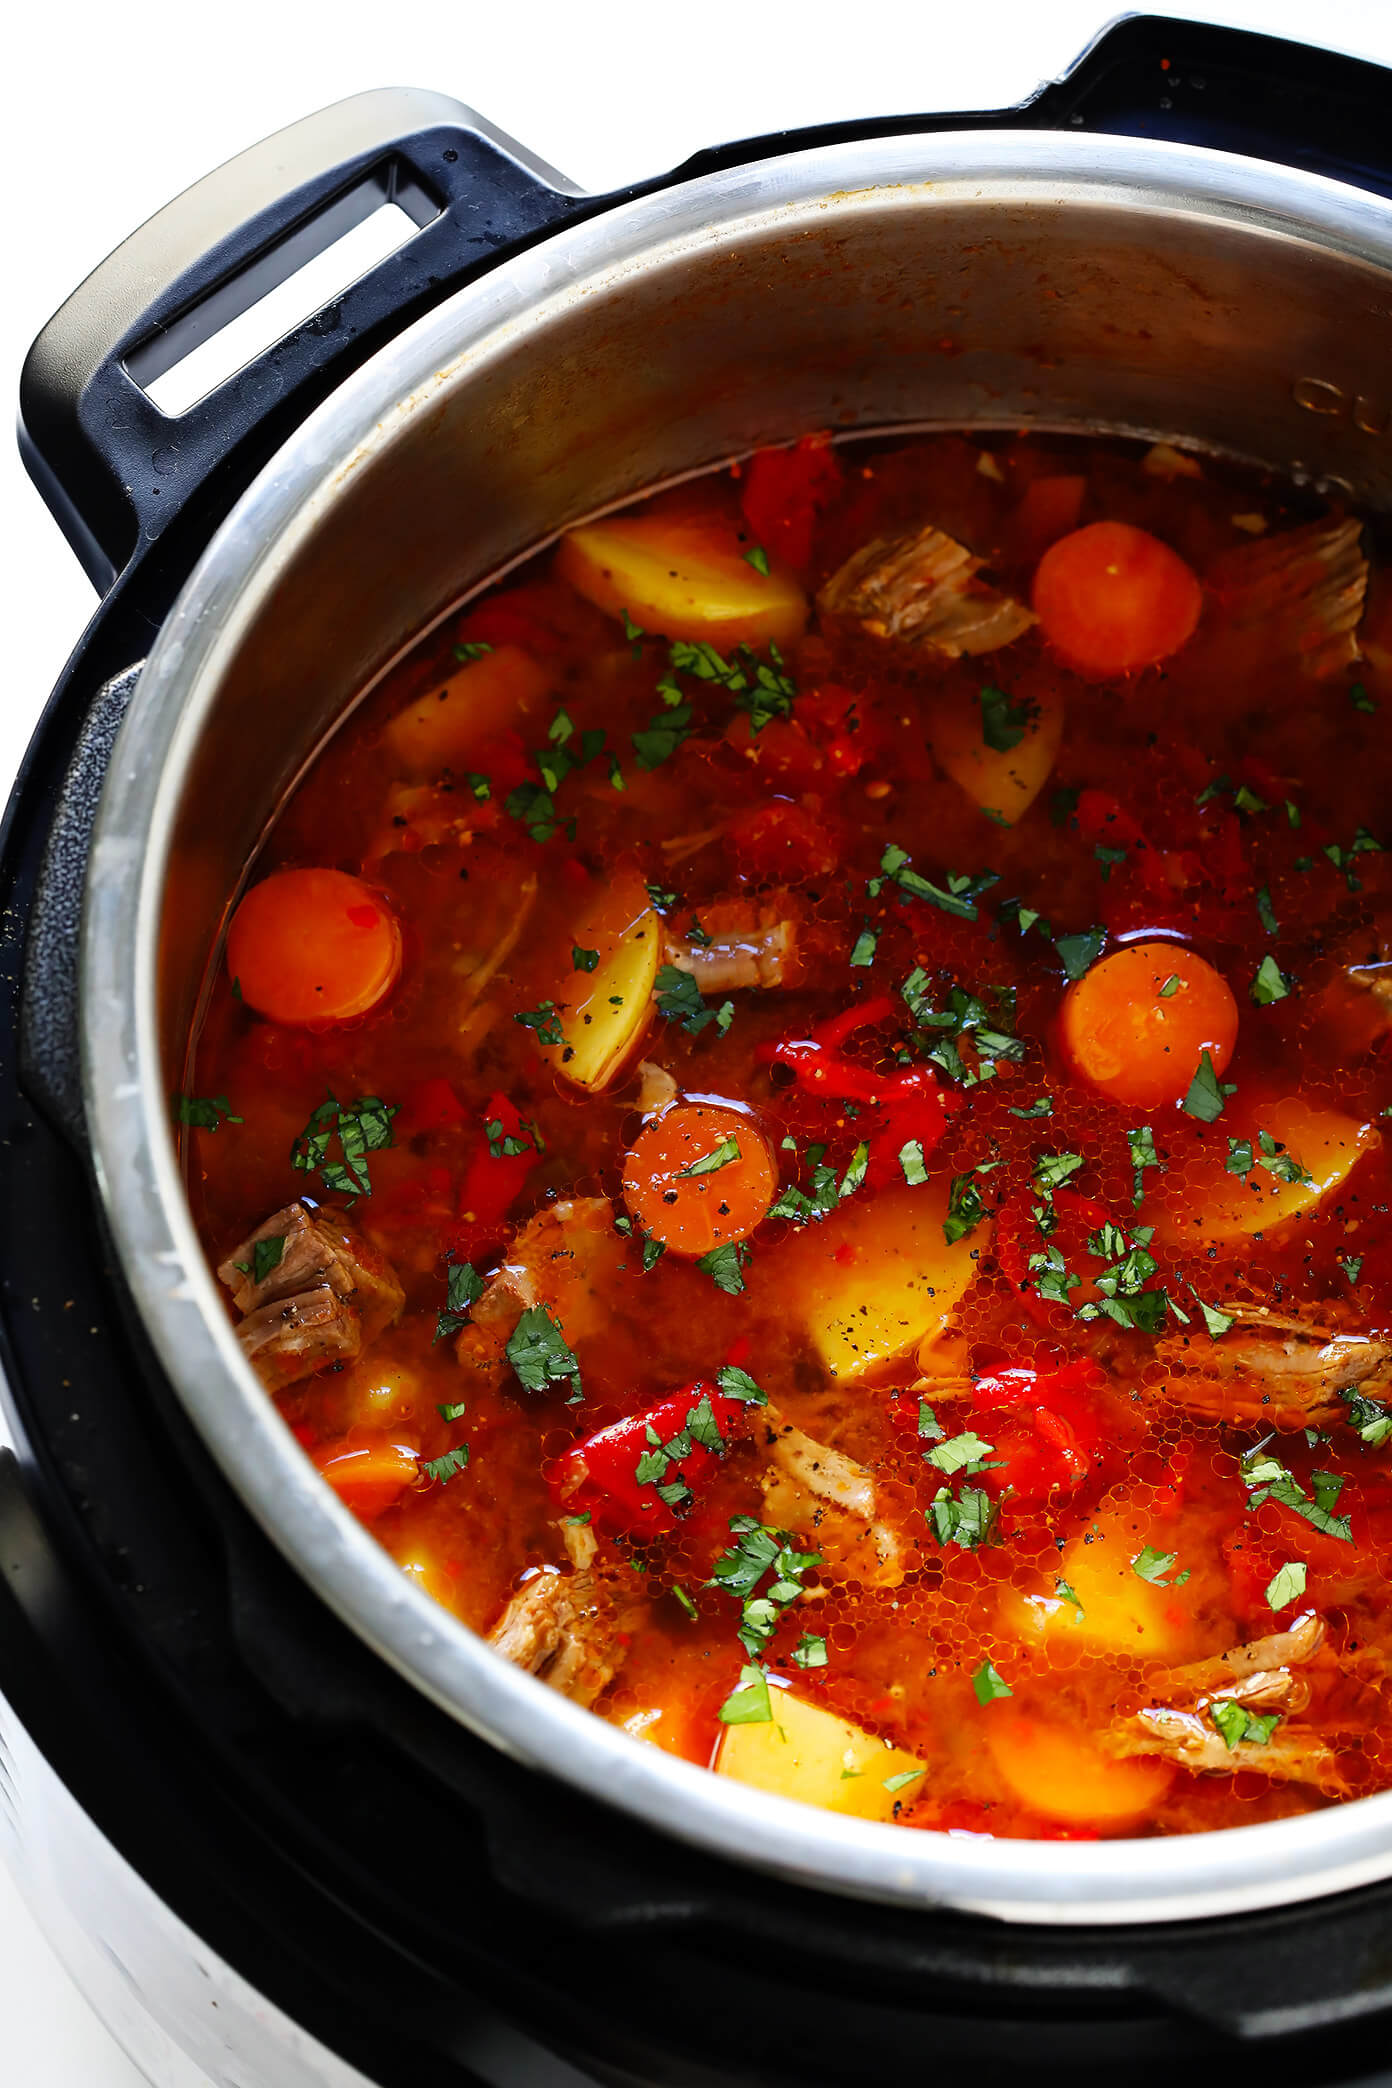 LOVE this Mexican Vegetable Beef Soup recipe! It's easy to make in the Instant Pot (pressure cooker), Crock-Pot (slow cooker), or on the stovetop. And it's full of tender steak, potatoes, carrots, roasted red peppers, tomatoes, and simmered in a delicious tomato chile broth. High recommend topping this stew with lots of fresh cilantro and avocado! #instantpot #soup #stew #pressurecooker #crockpot #slowcooker #comfortfood #beef #steak